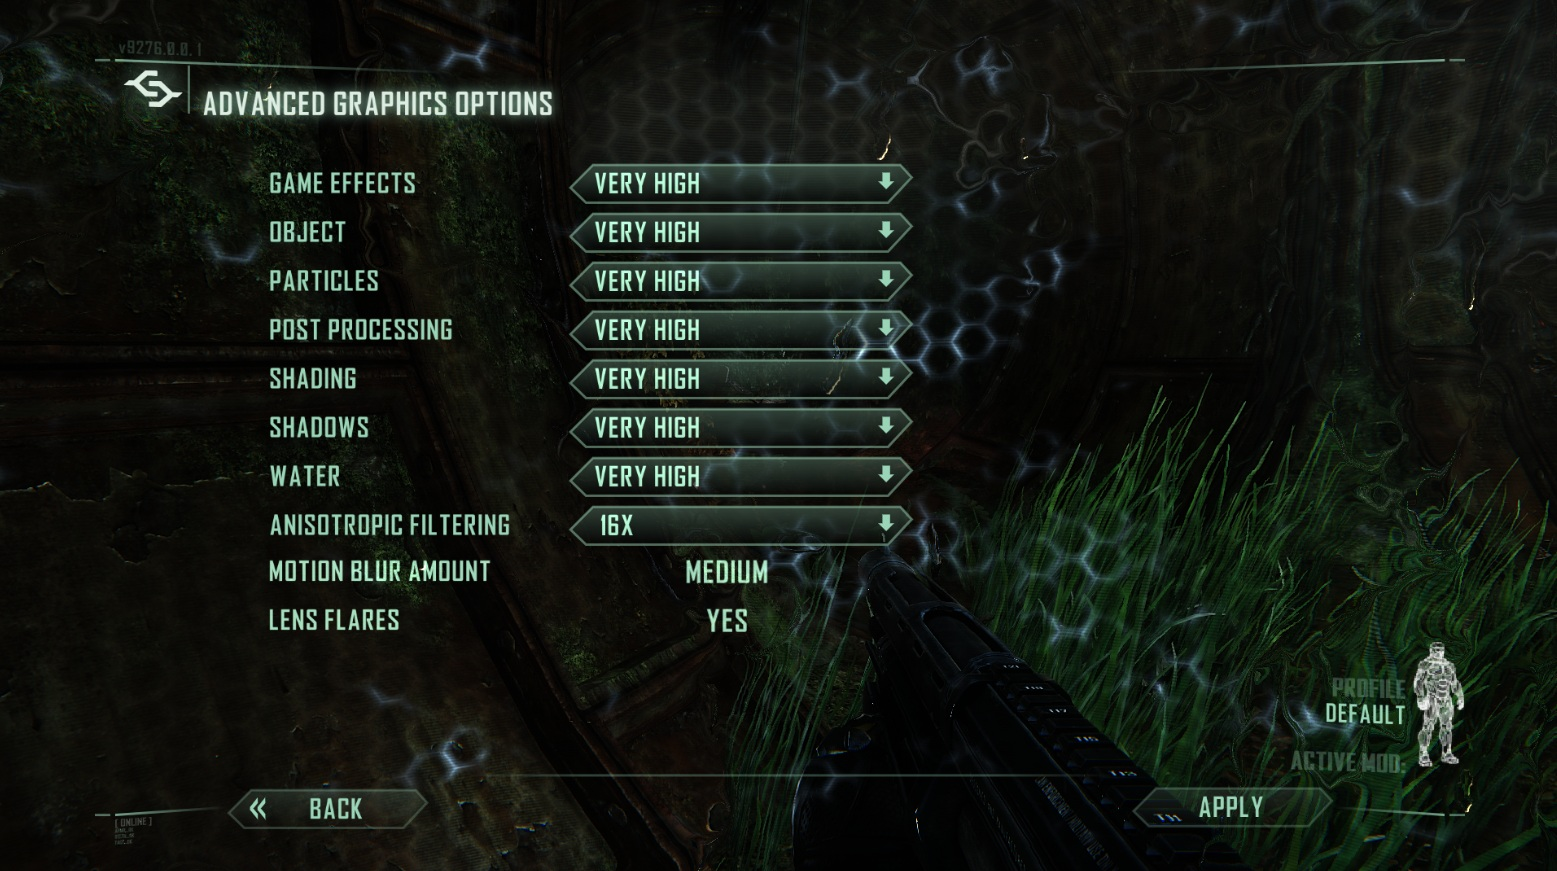 What Video Card Is Crysis Designed For